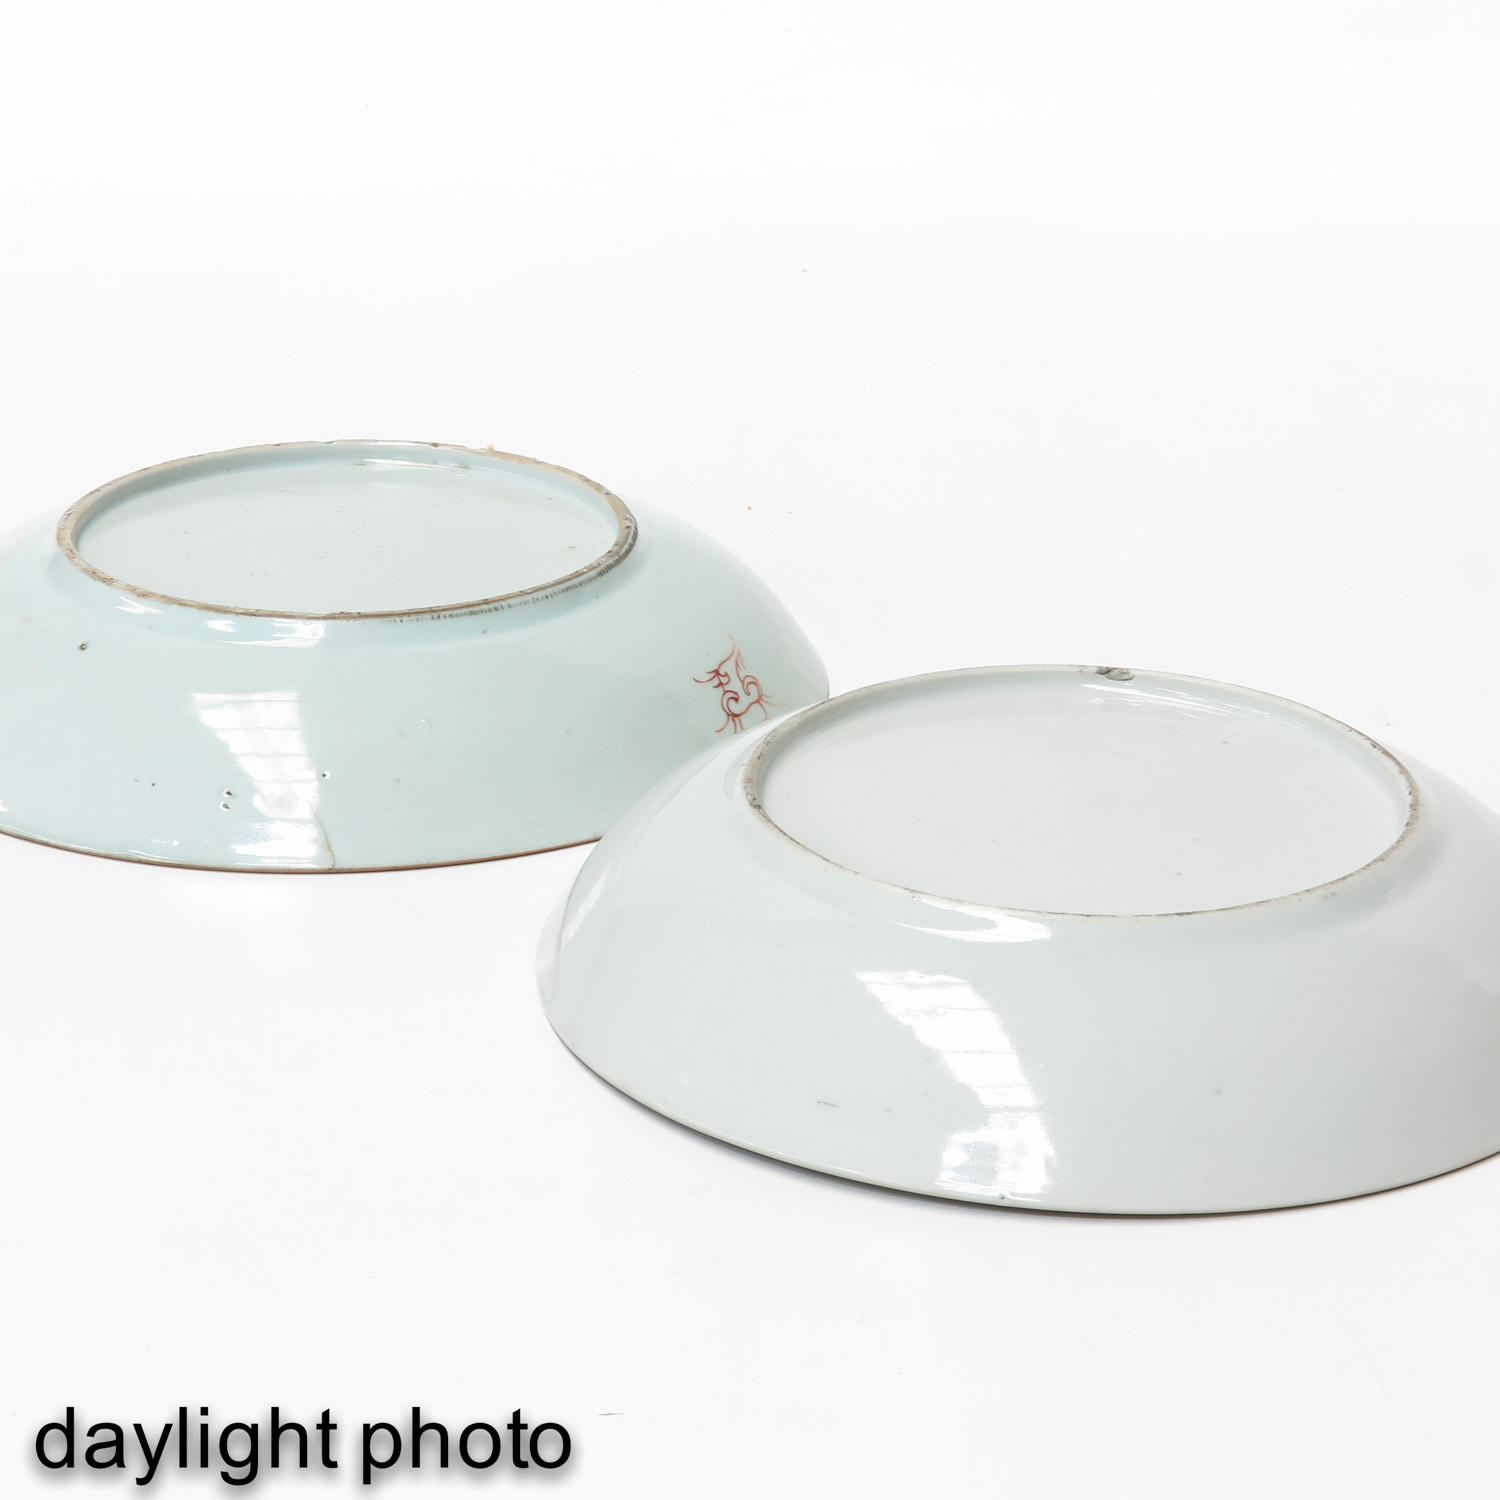 A Pair of Plates - Image 8 of 10